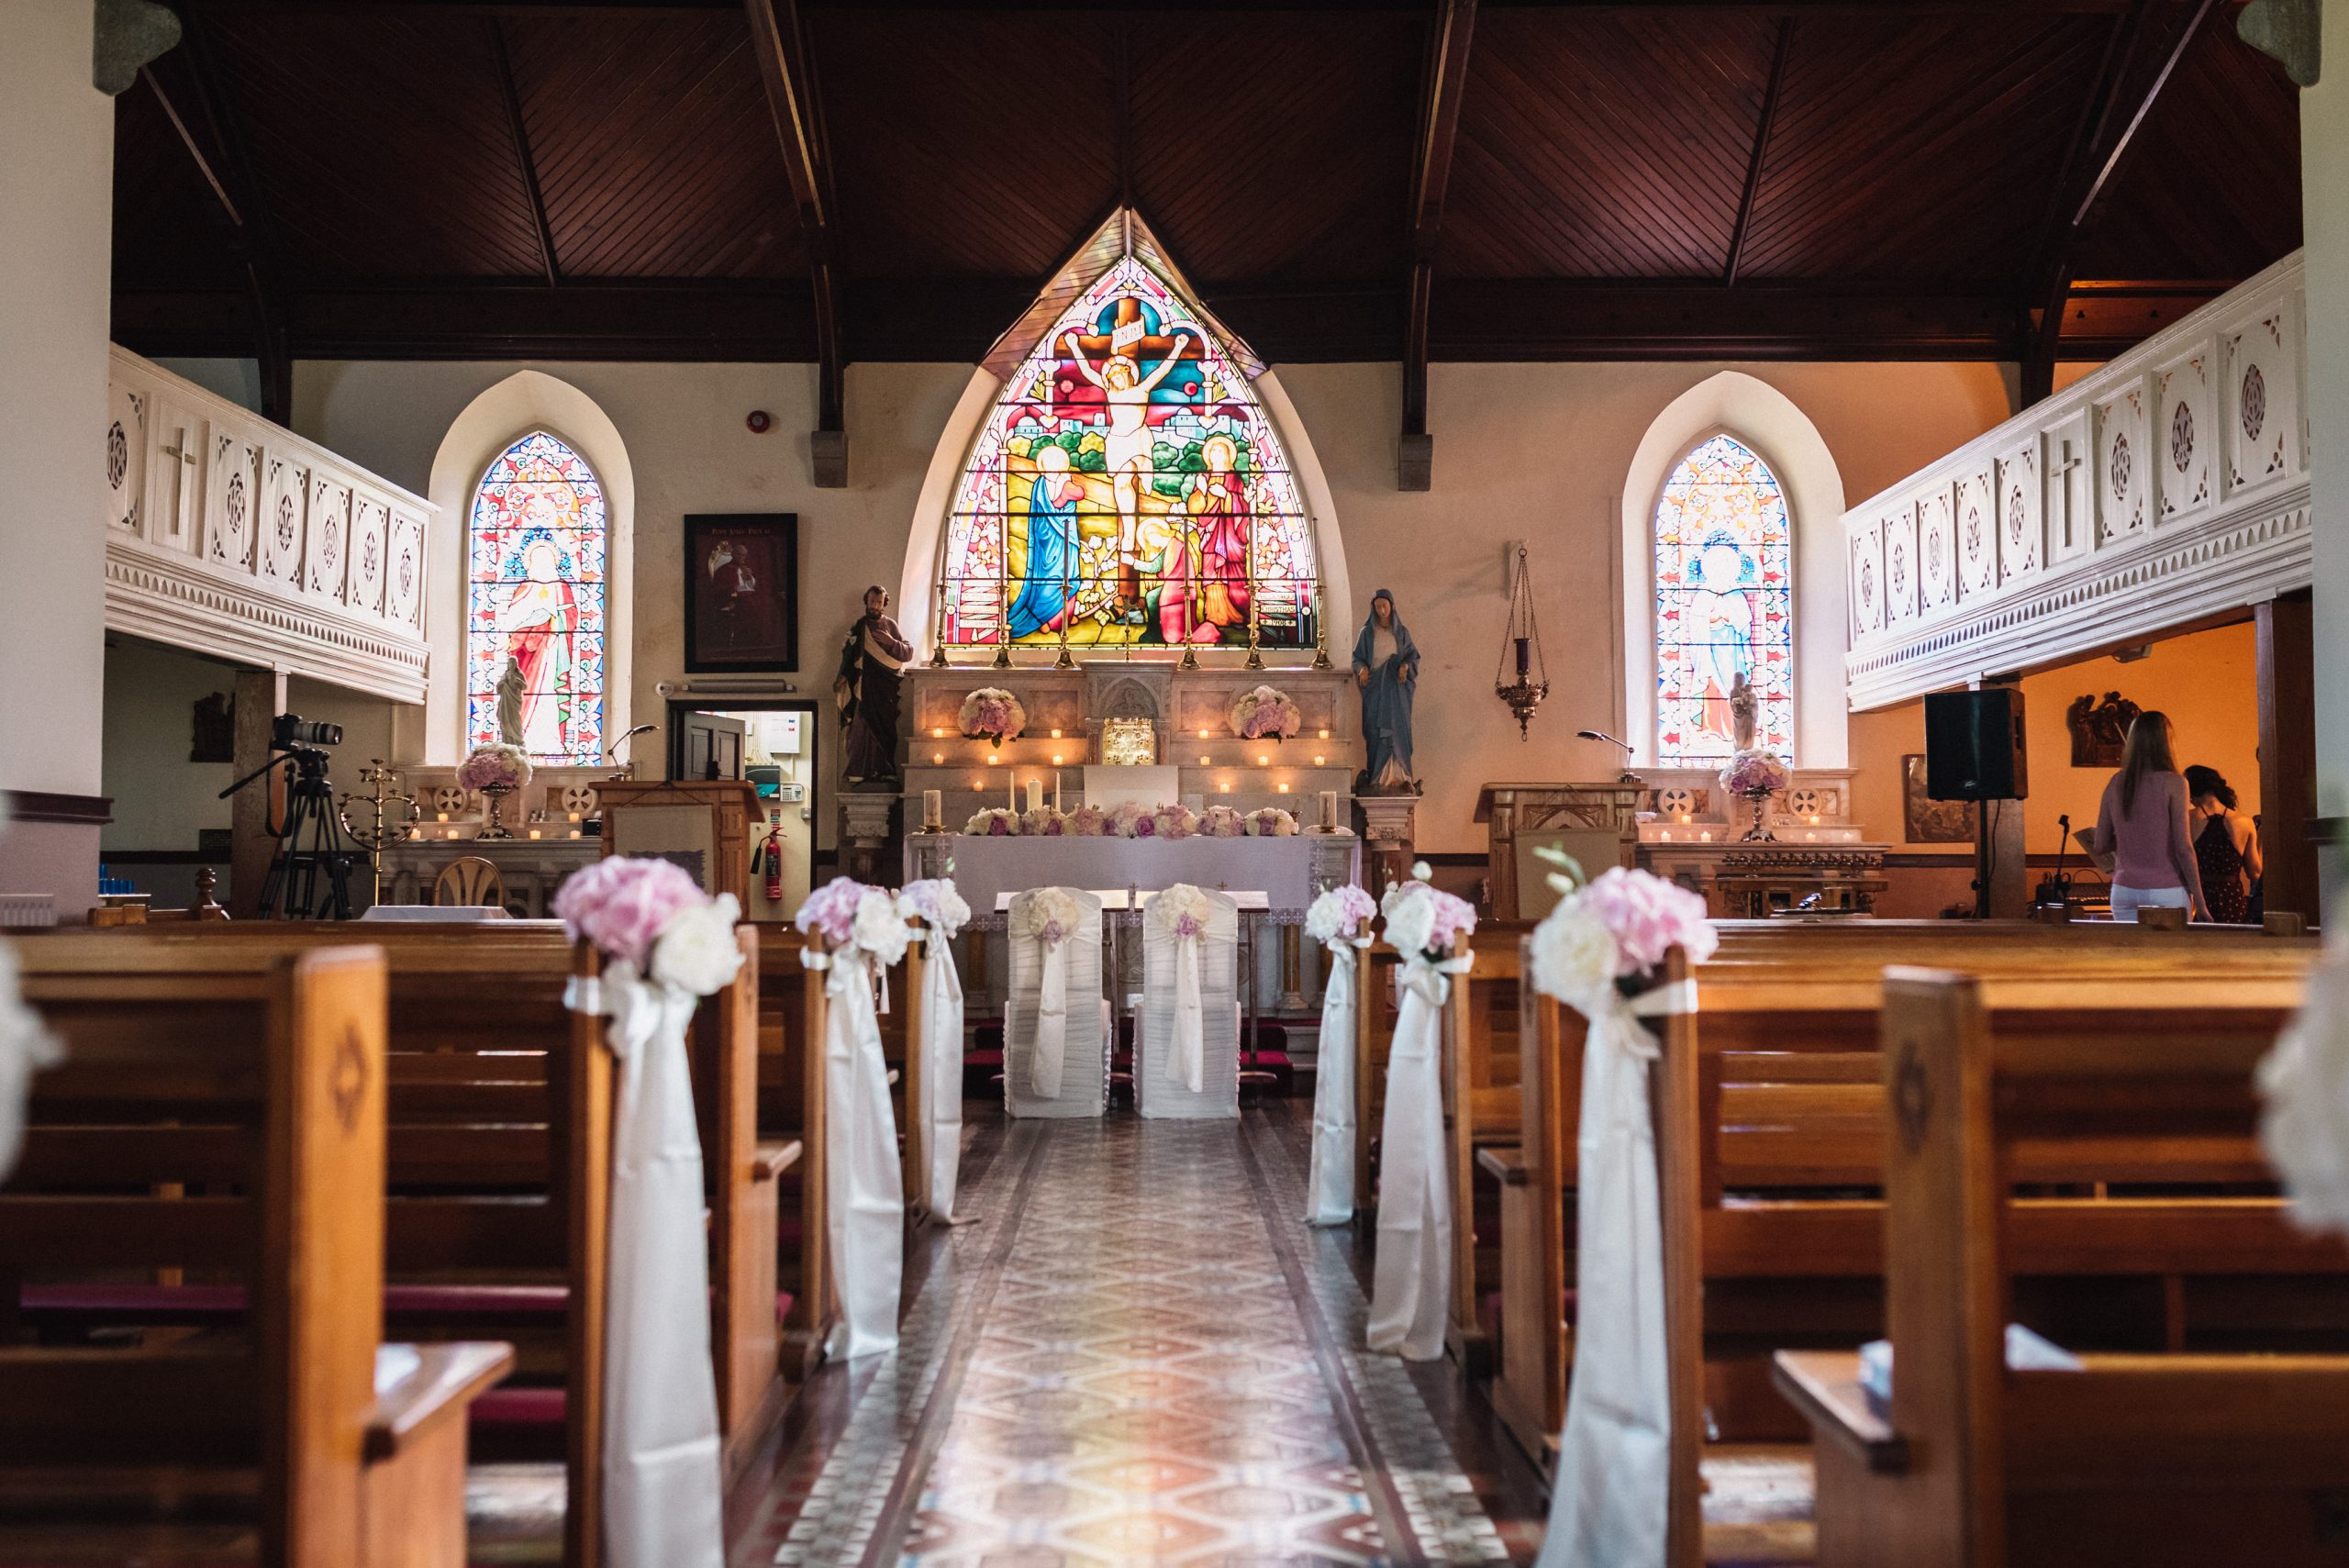 Church decorations - pew ends, bride and groom chairs and floral arrangements